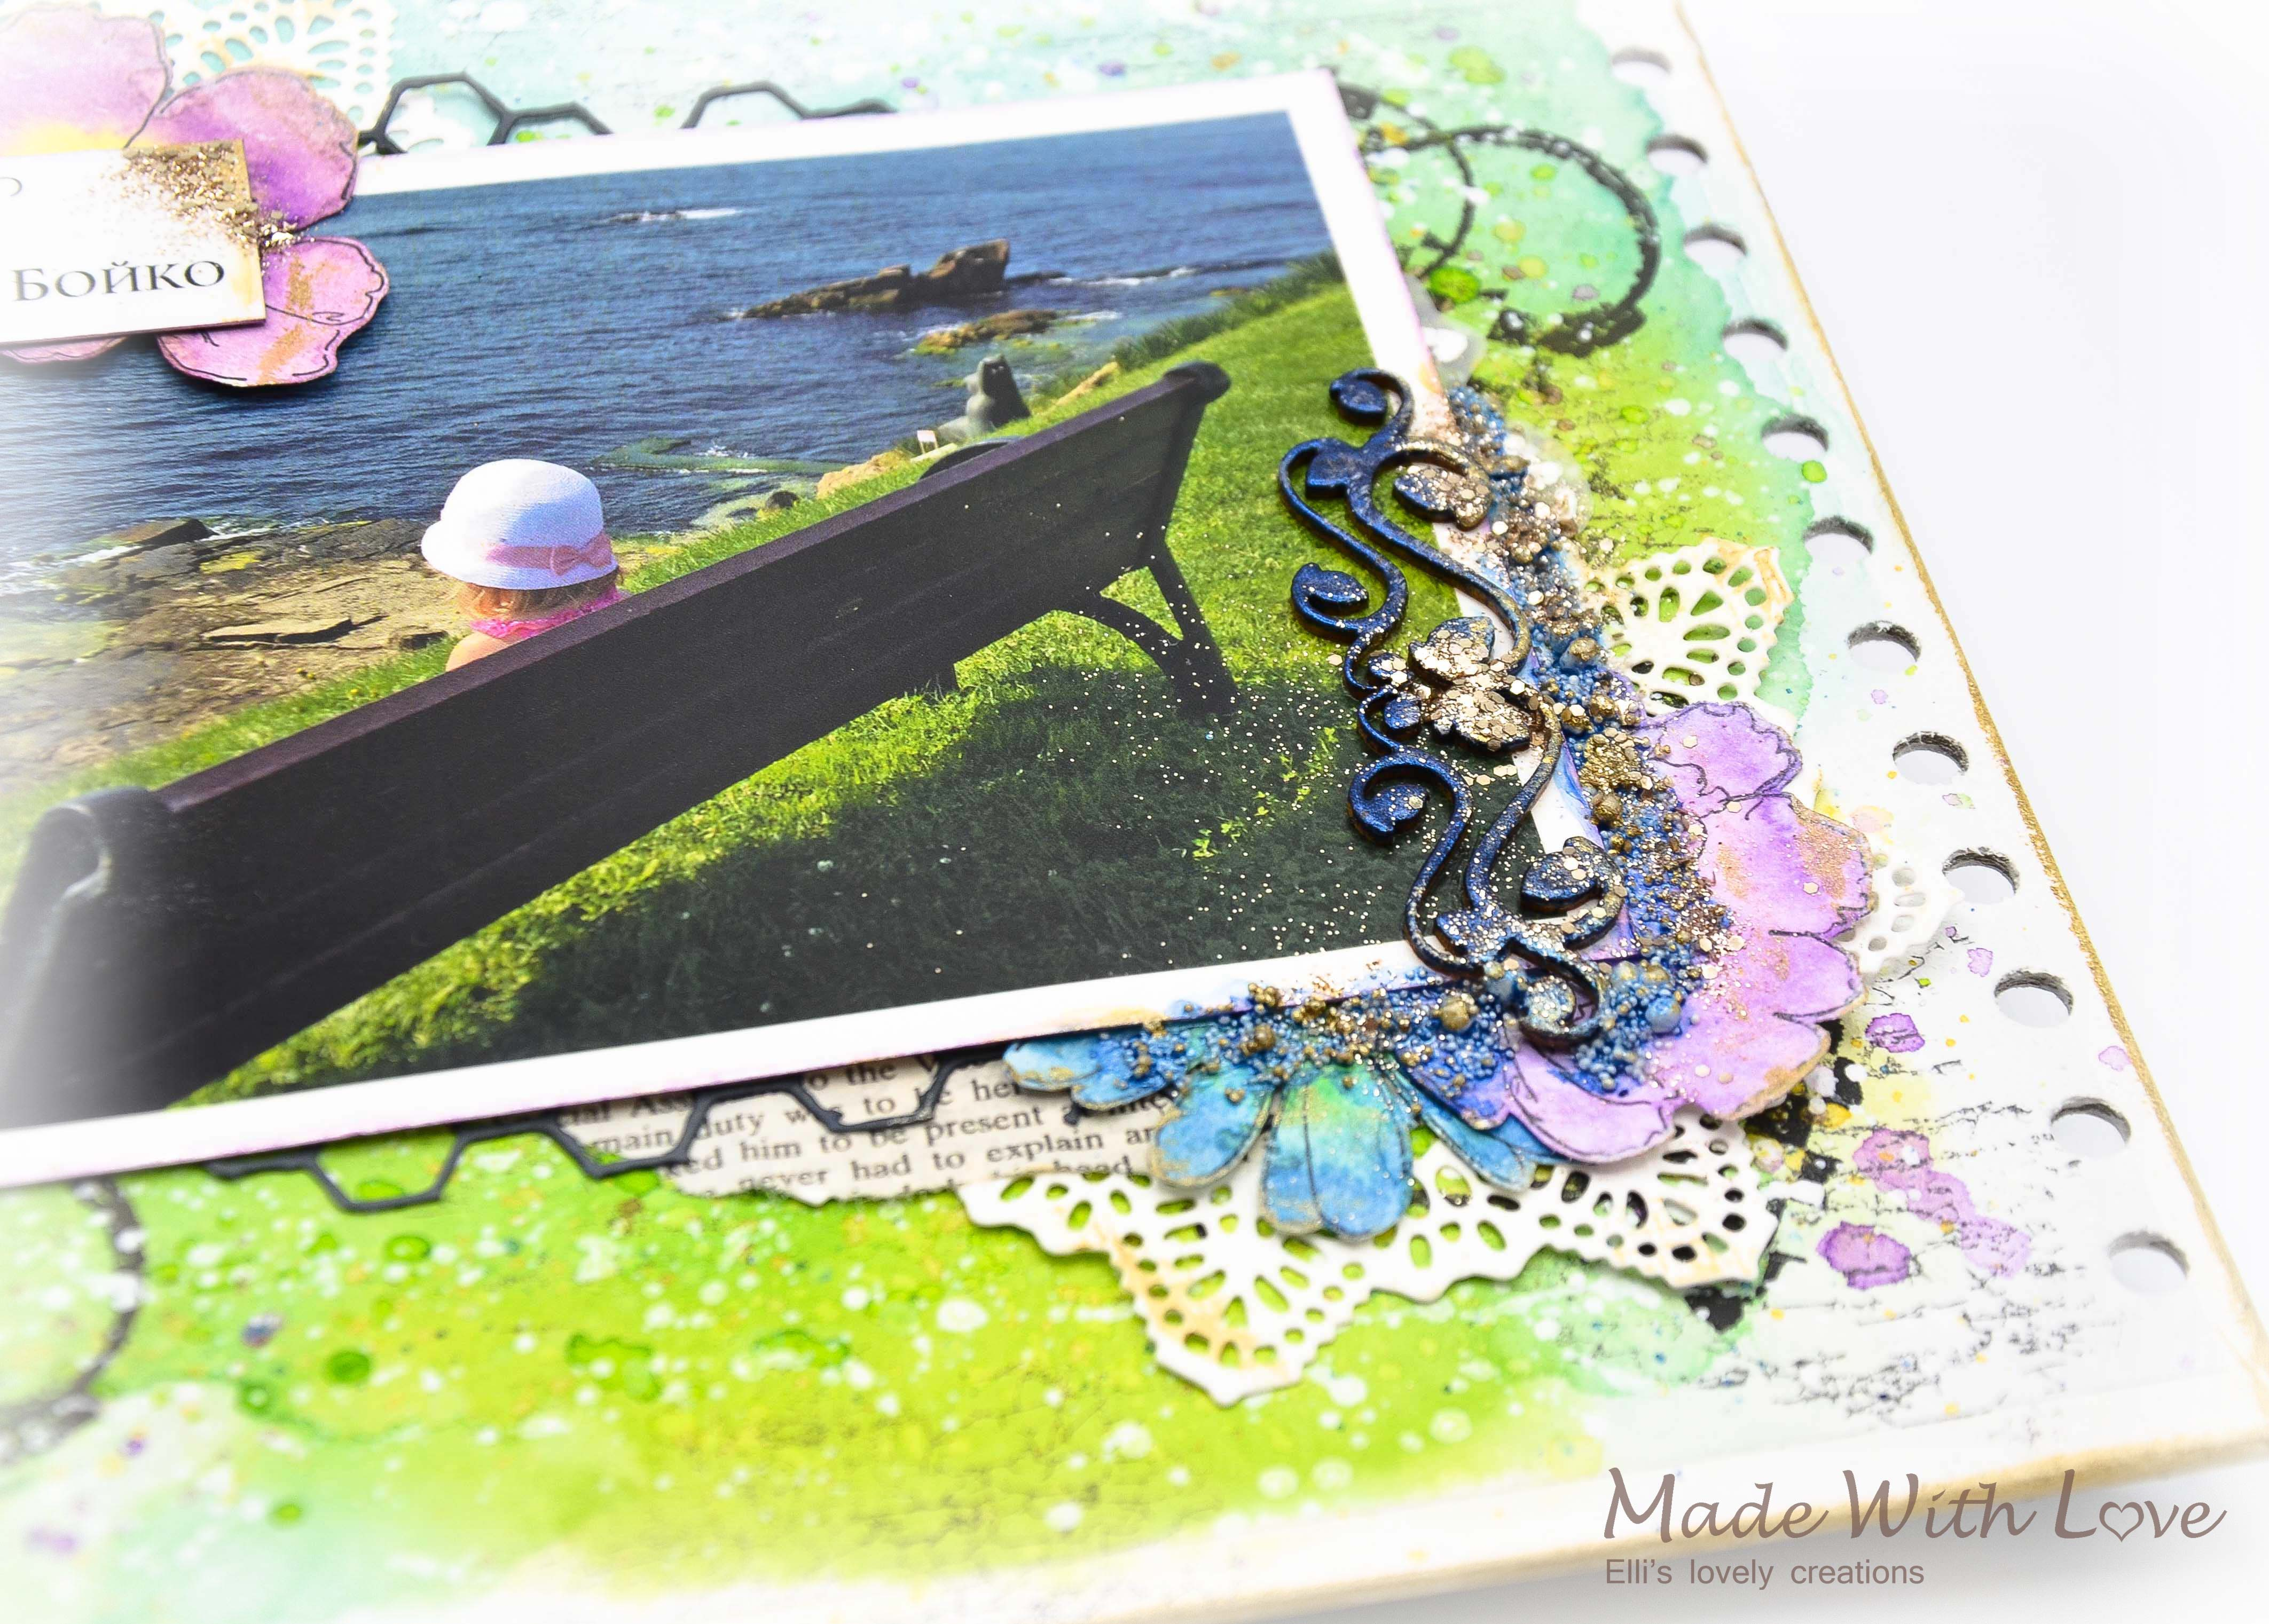 Mixed Media Summer Garden Wedding Album Cover Enjoy 0031